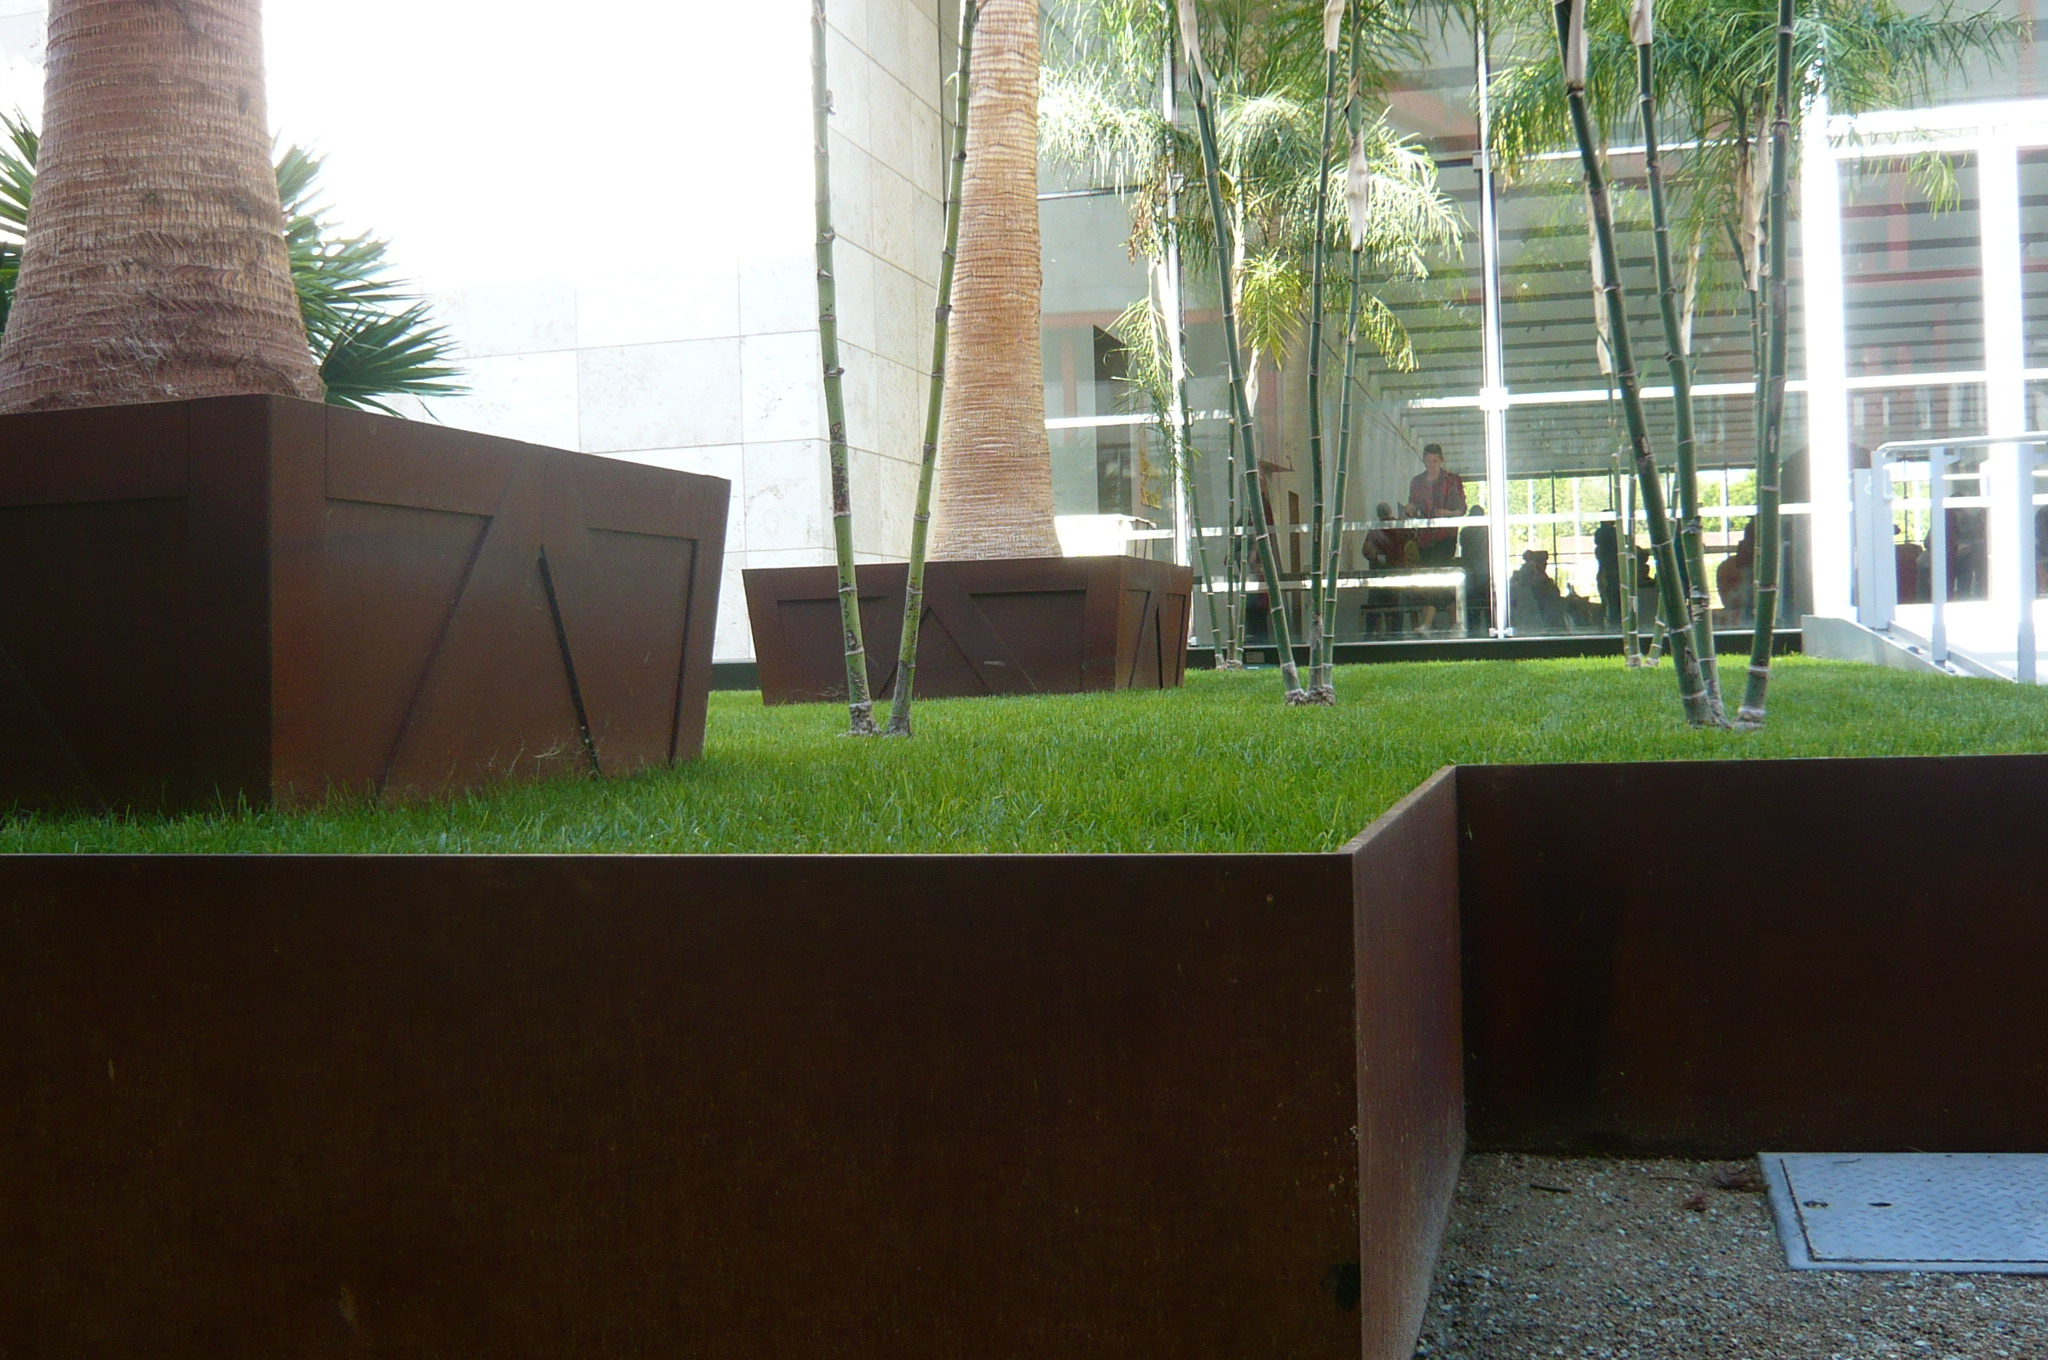 1000 images about modern planters on pinterest - Macetas modernas ...